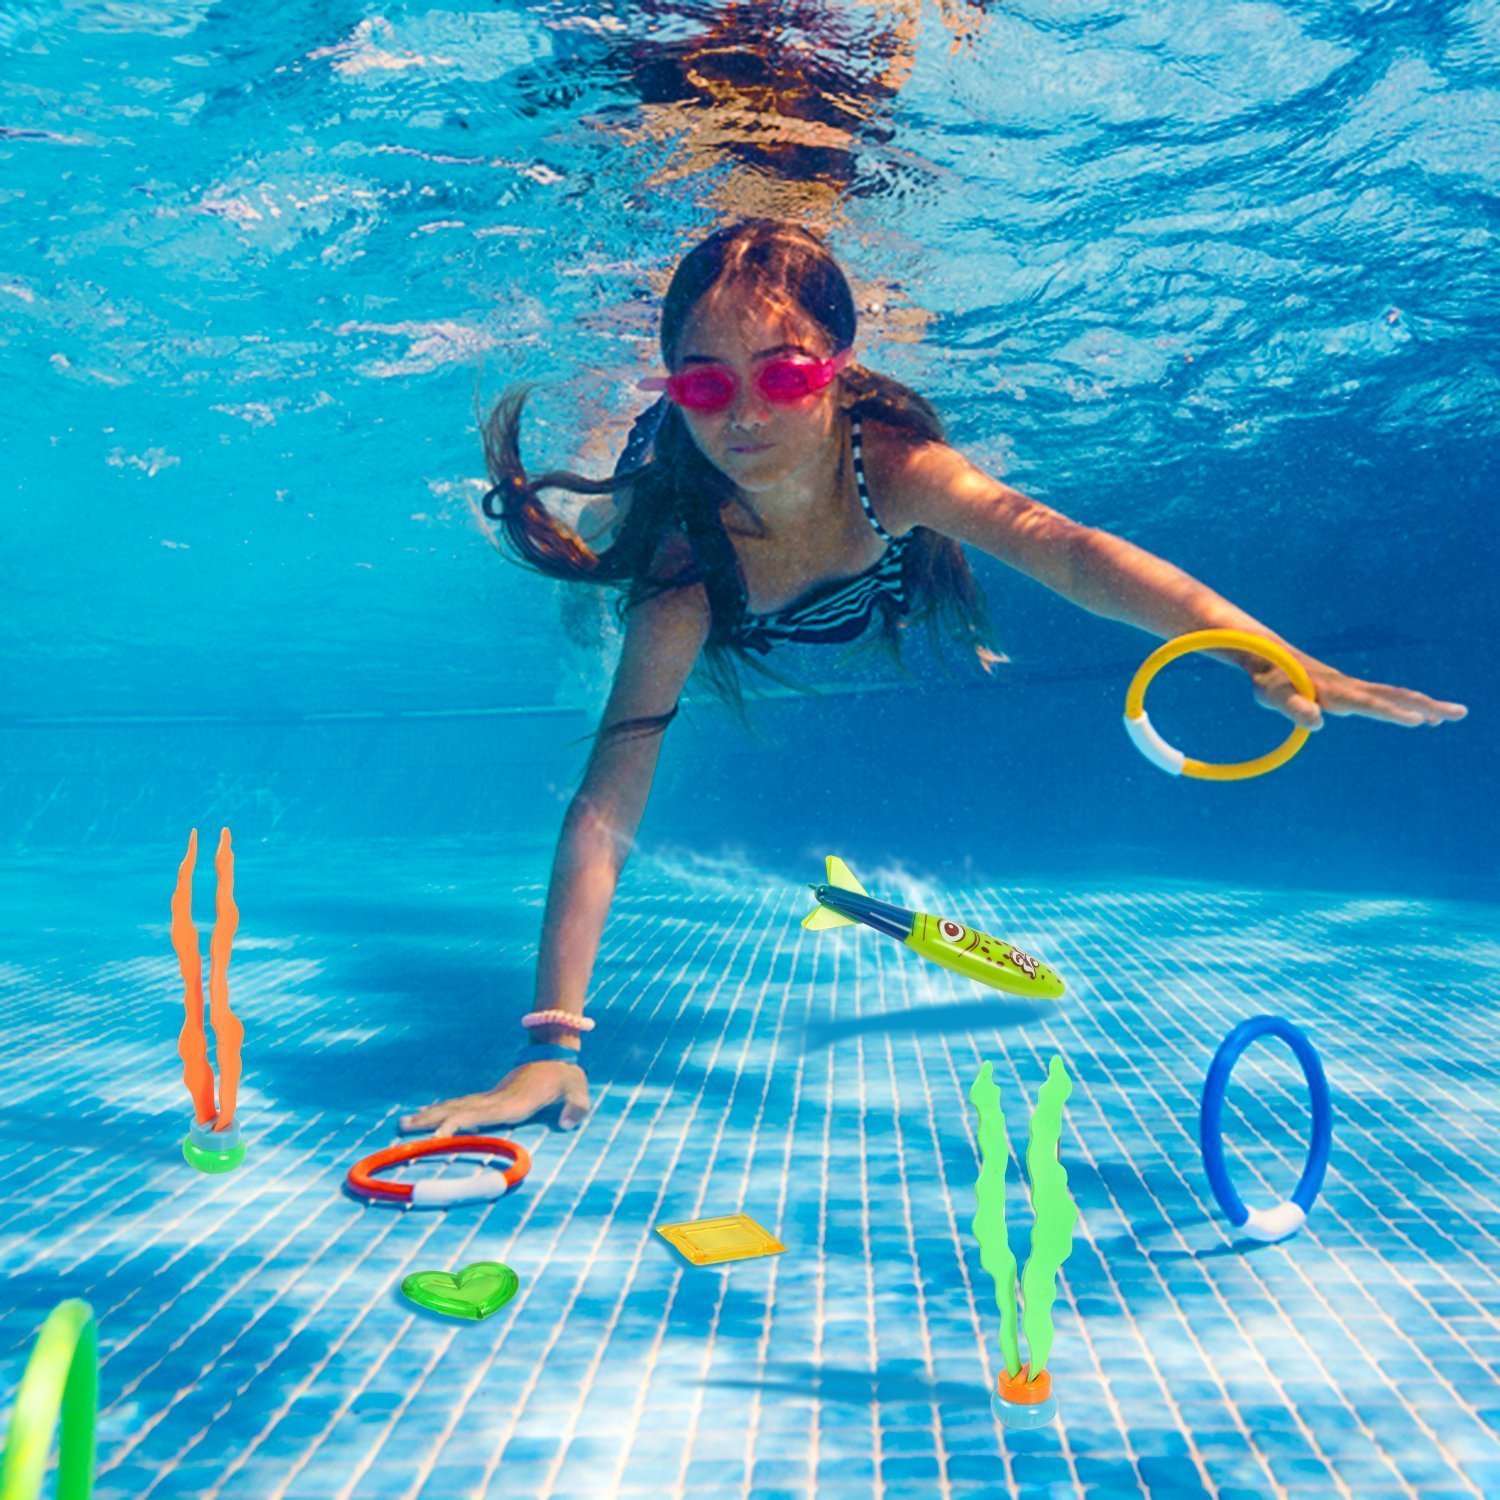 LEZHI Underwater Swimming/Diving Pool Toy Rings including (4) Diving Rings, (4) Diving Torpedos Bandits,(3) Stringy Octopus, (6) Diving Dolphins,(8) with Under Water Treasures Gift Set Bundle by LEZHI (Image #2)